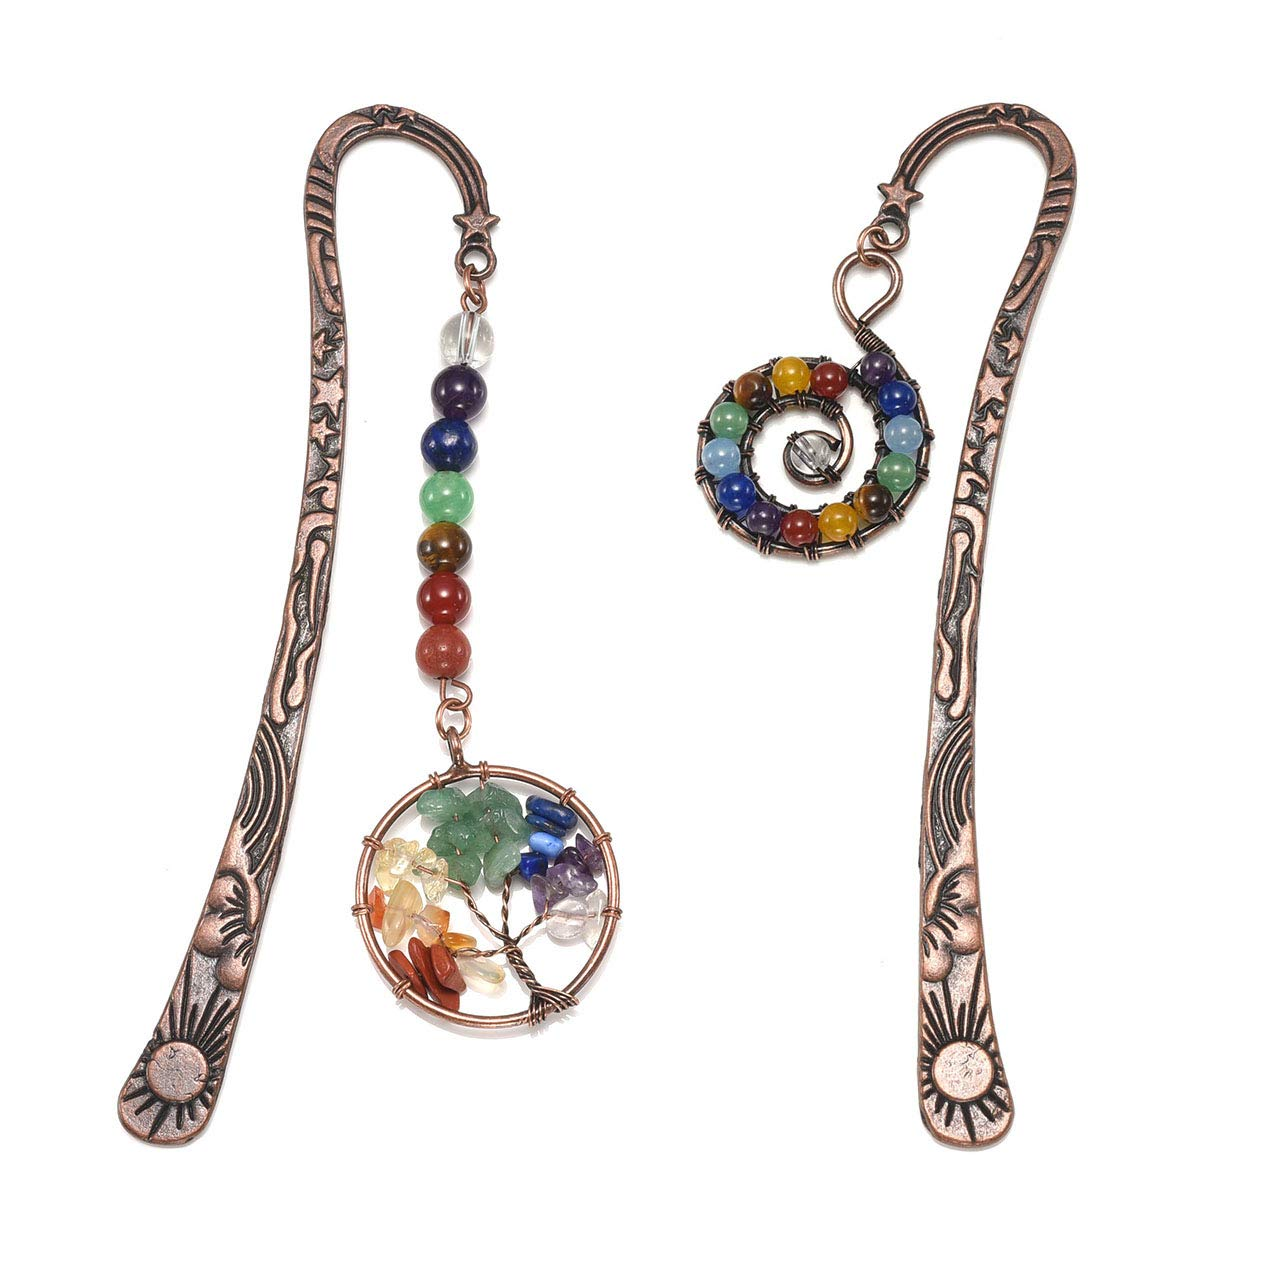 JOVIVI Anqitue Copper Metal Beading Bookmarks Pagemarker with Handmade 7 Chakra Healing Crystals Tree of Life Tumbled Gemstones/Swirl Round Beads Dangle (Mixed 2pcs)